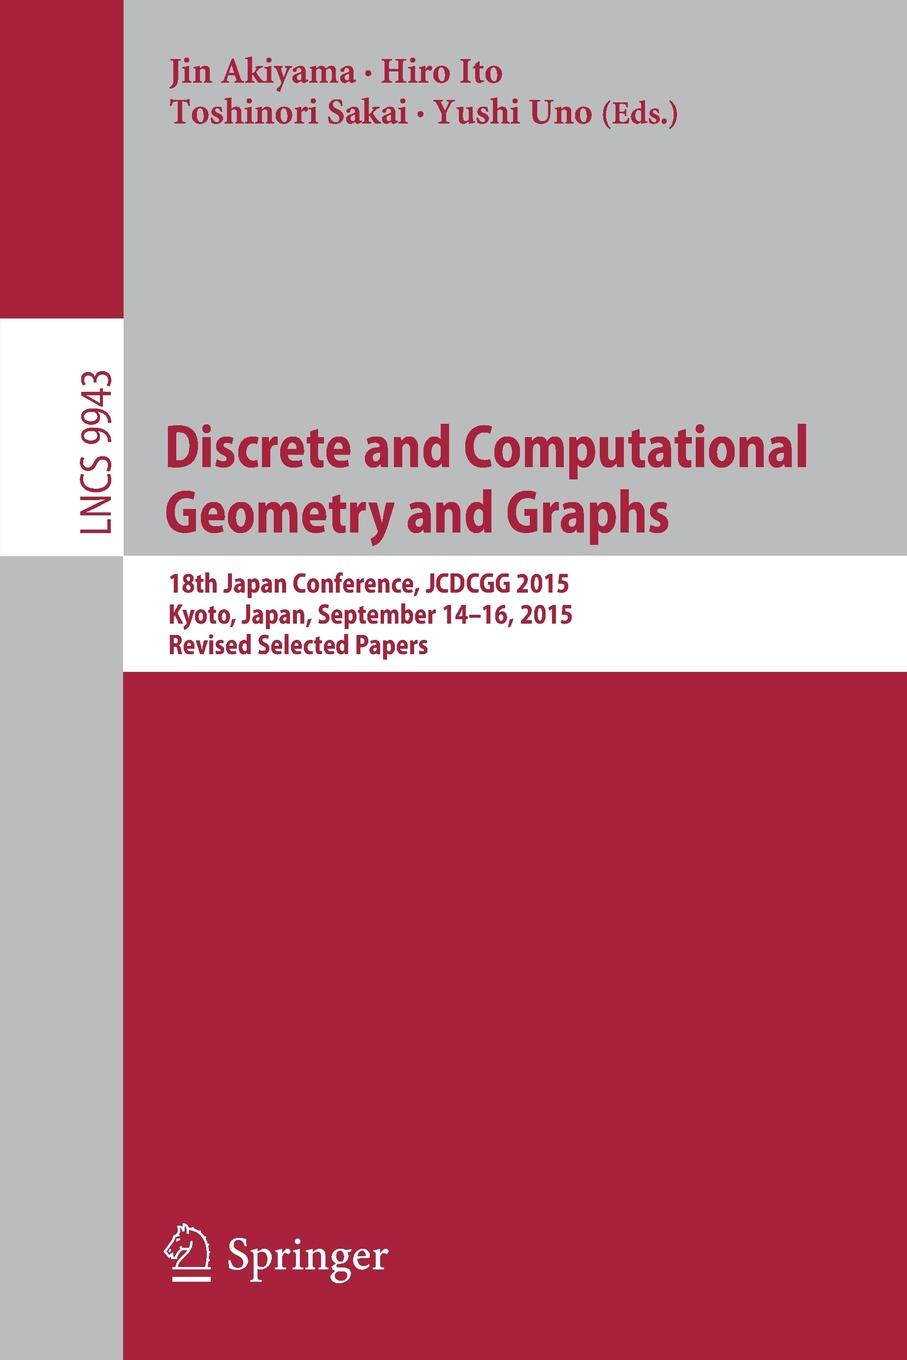 Discrete and Computational Geometry Graphs. 18th Japan Conference, JCDCGG 2015, Kyoto, Japan, September 14-16, Revised Selected Papers